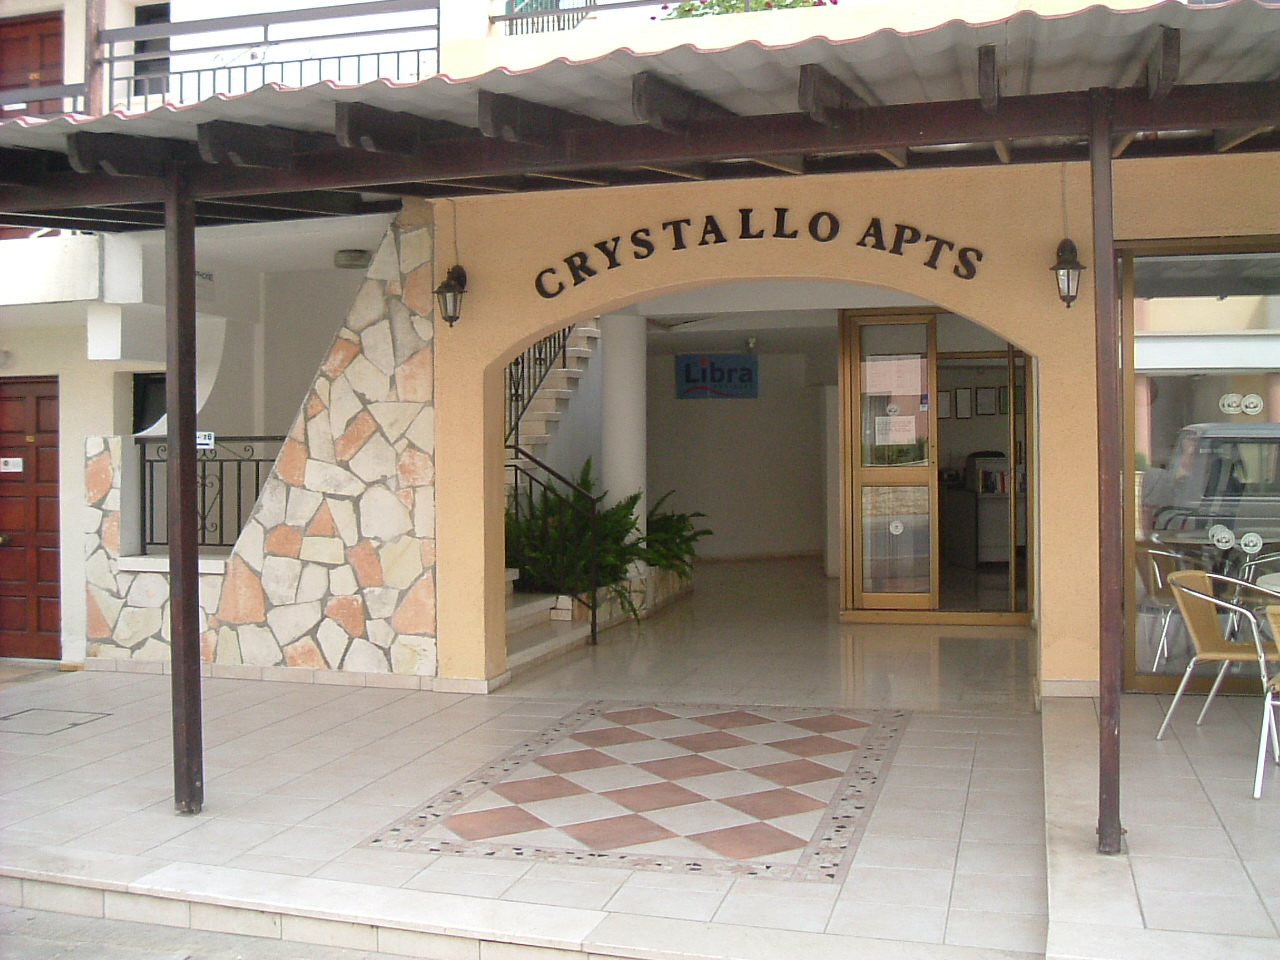 Crystallo Apartments